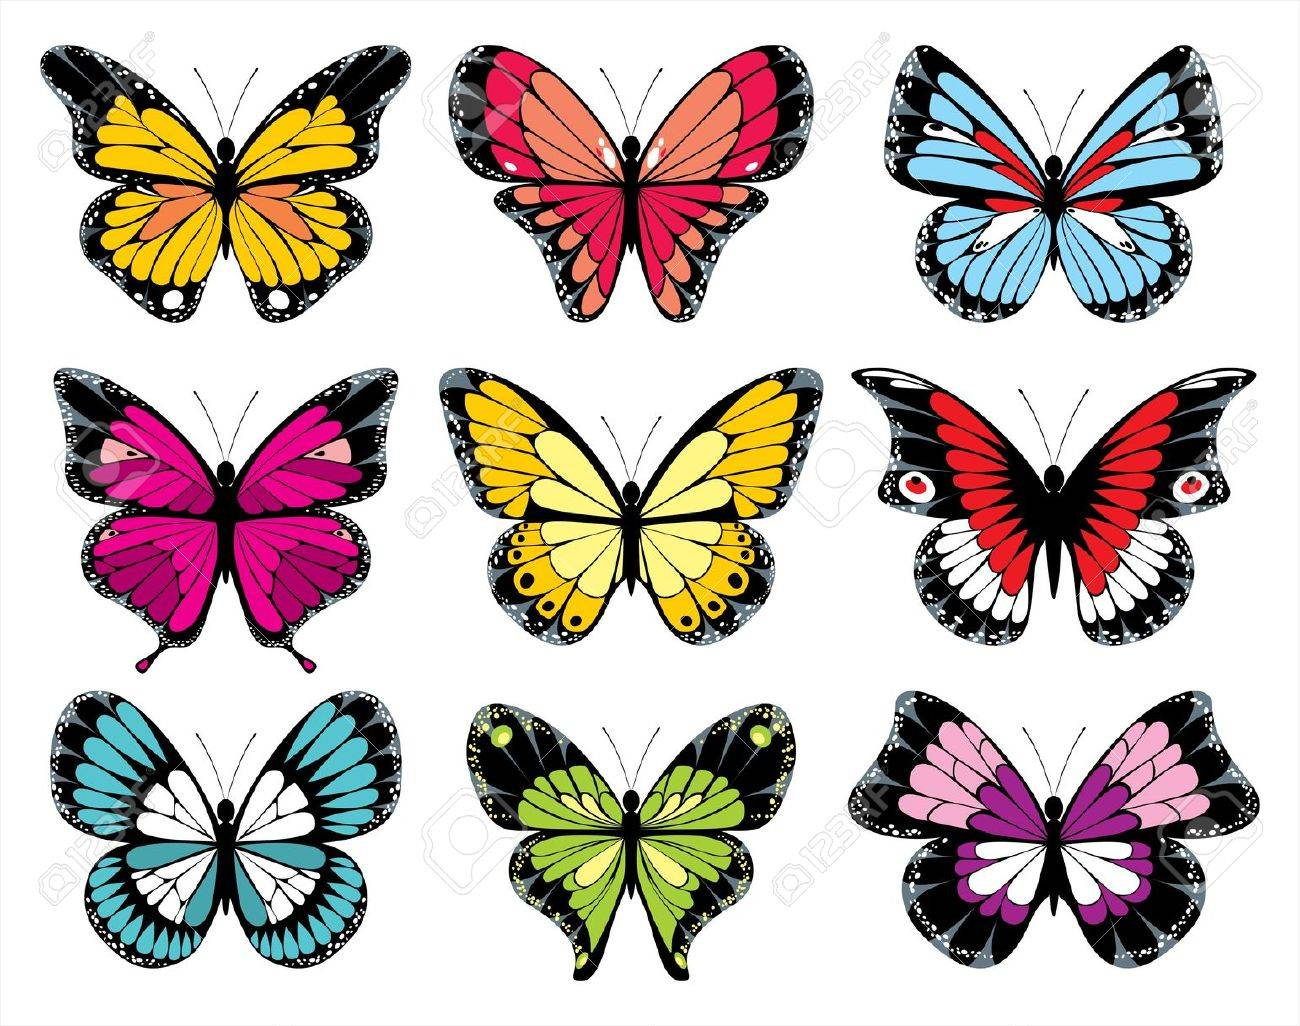 stylized butterfly icons Stock Vector - 14257302